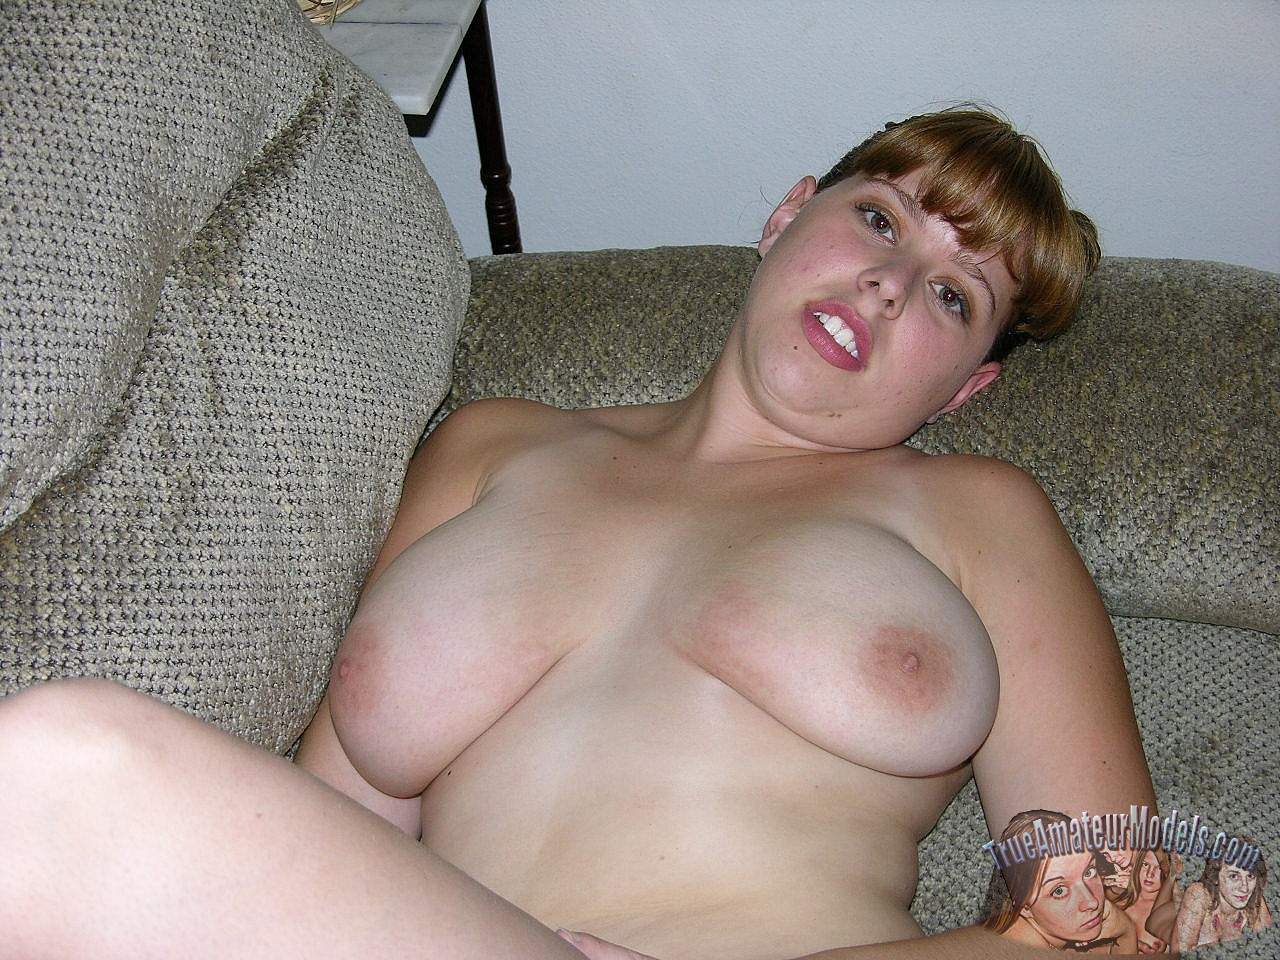 Nude amateur girls spreading